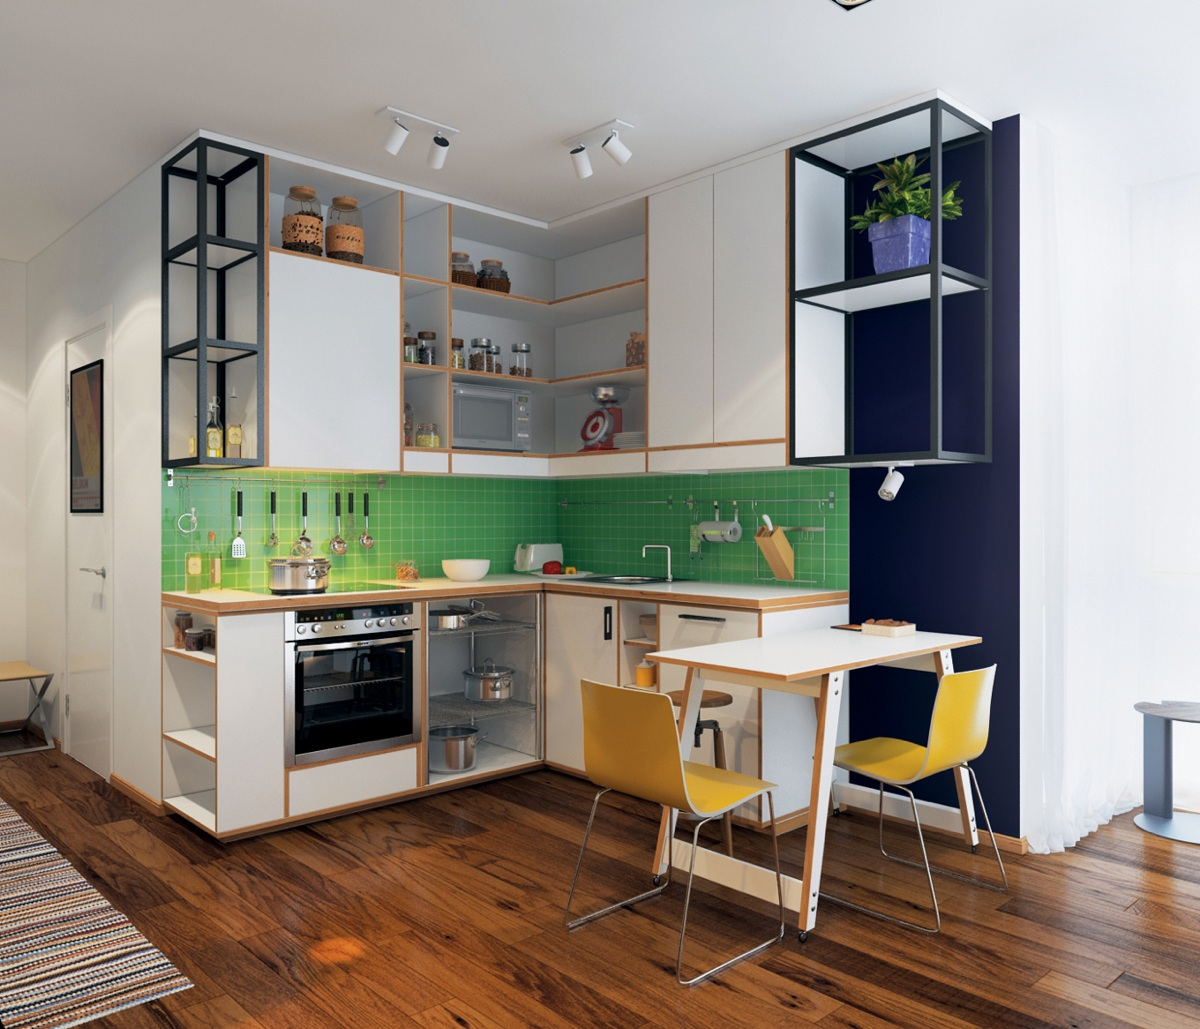 Homes Under 400 Square Feet 5 Apartments That Squeeze Utility Out Of Every Inch